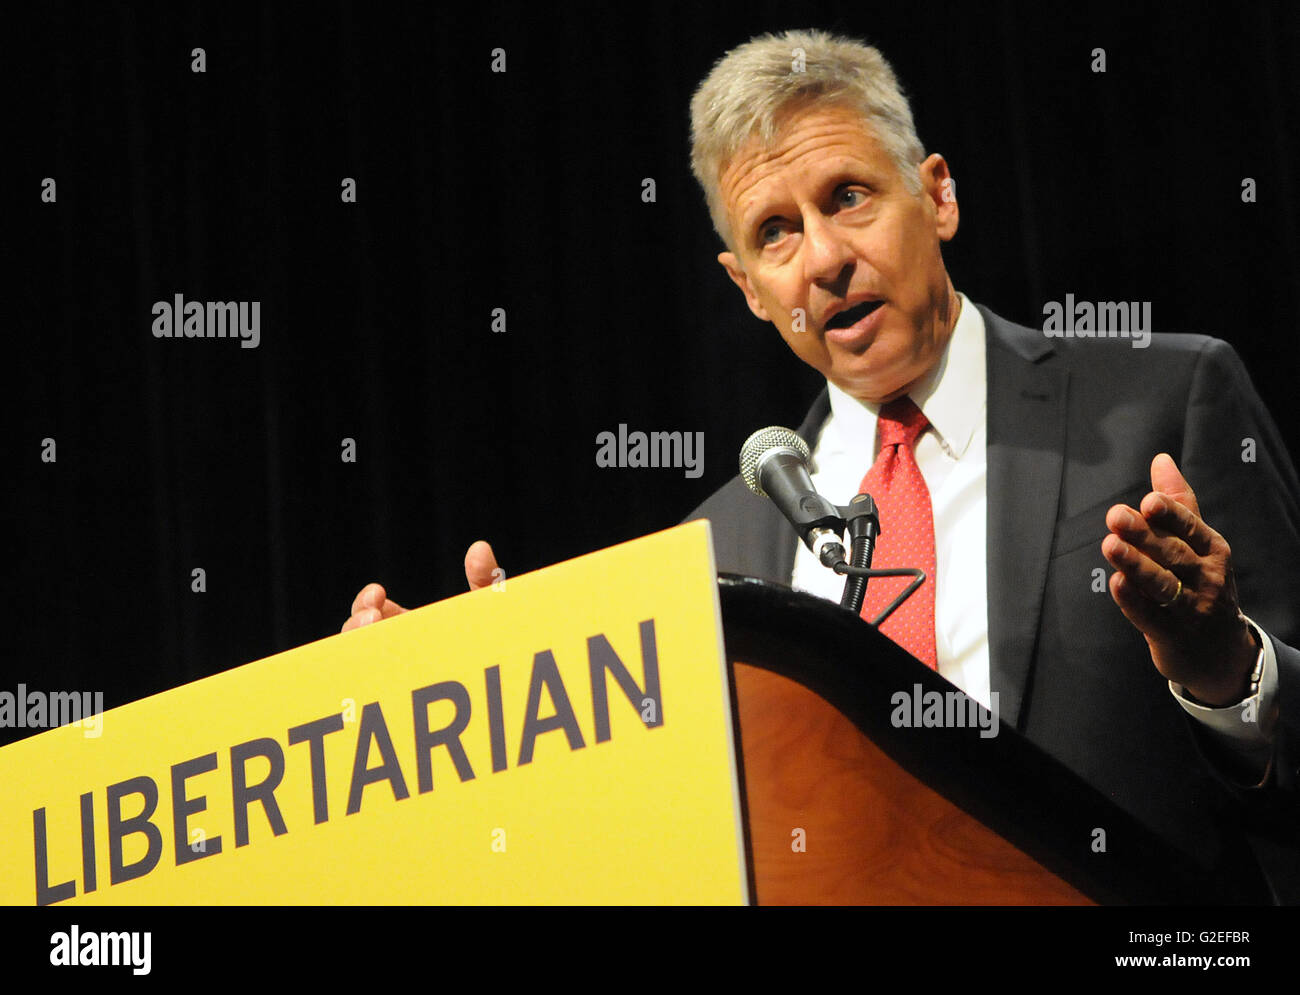 Orlando, Florida, USA. 29th May, 2016. Libertarian party presidential candidate, former New Mexico Governor Gary - Stock Image